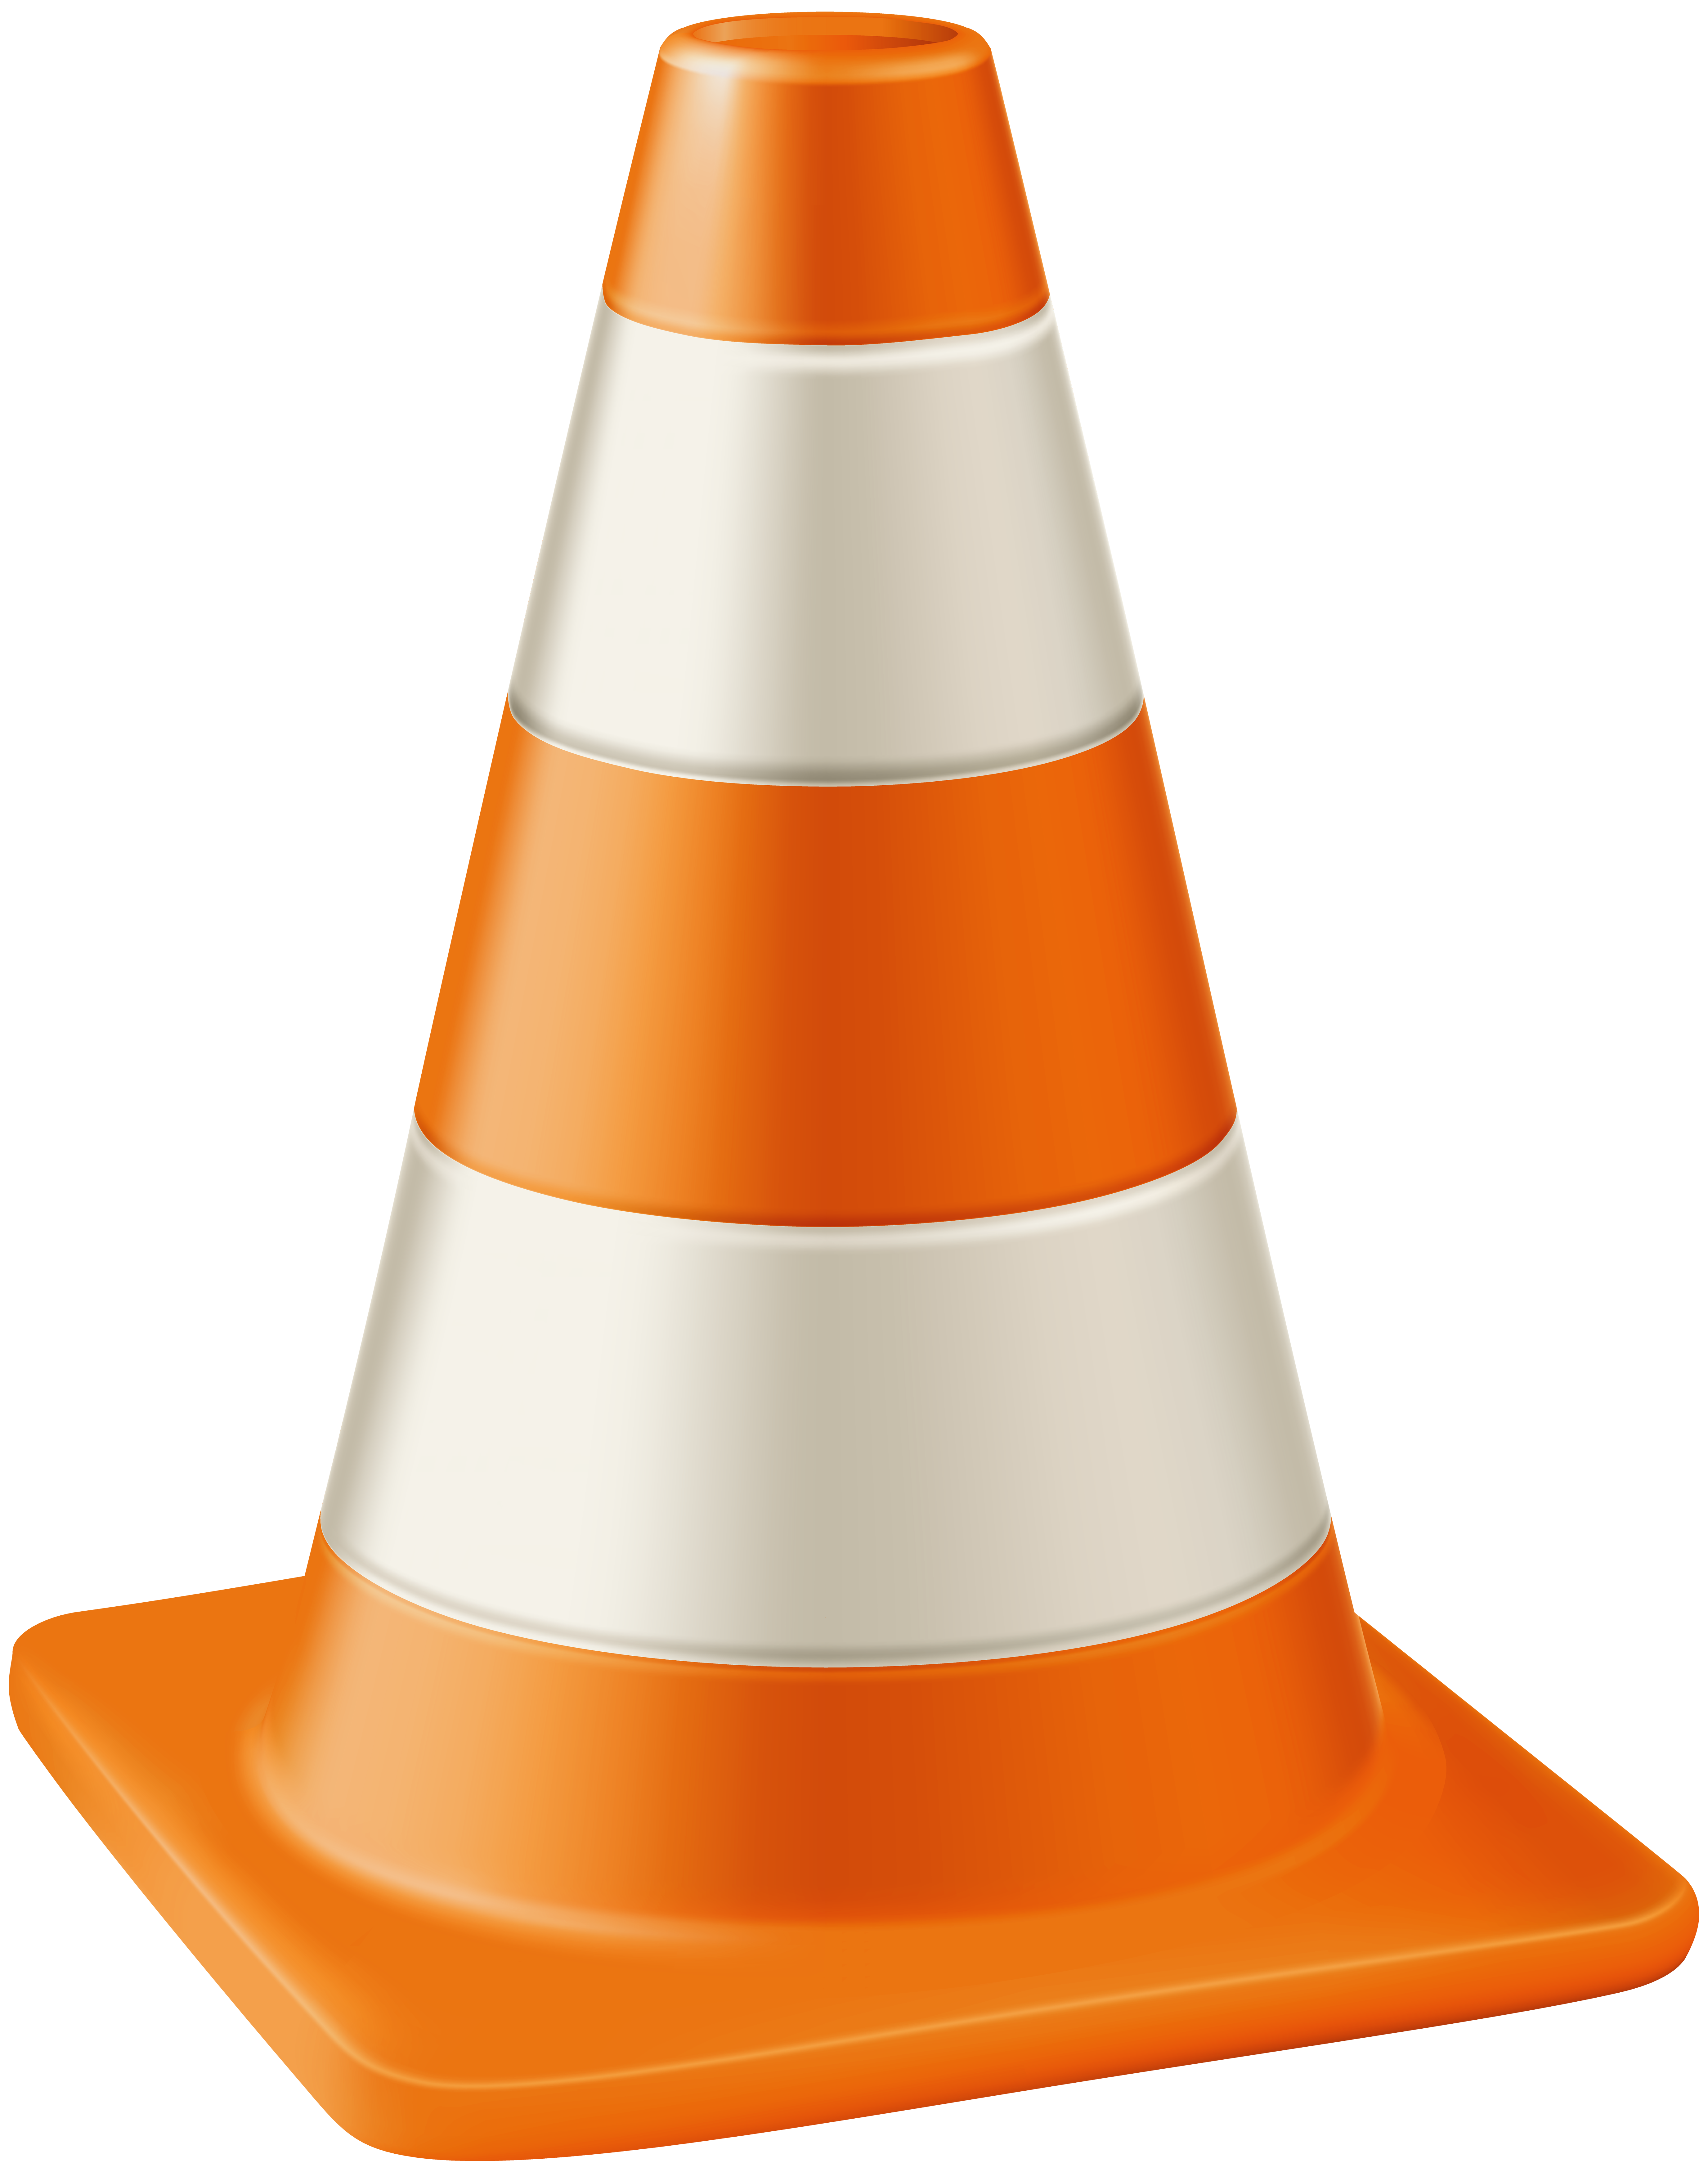 vector black and white download Cone clipart. Traffic transparent png clip